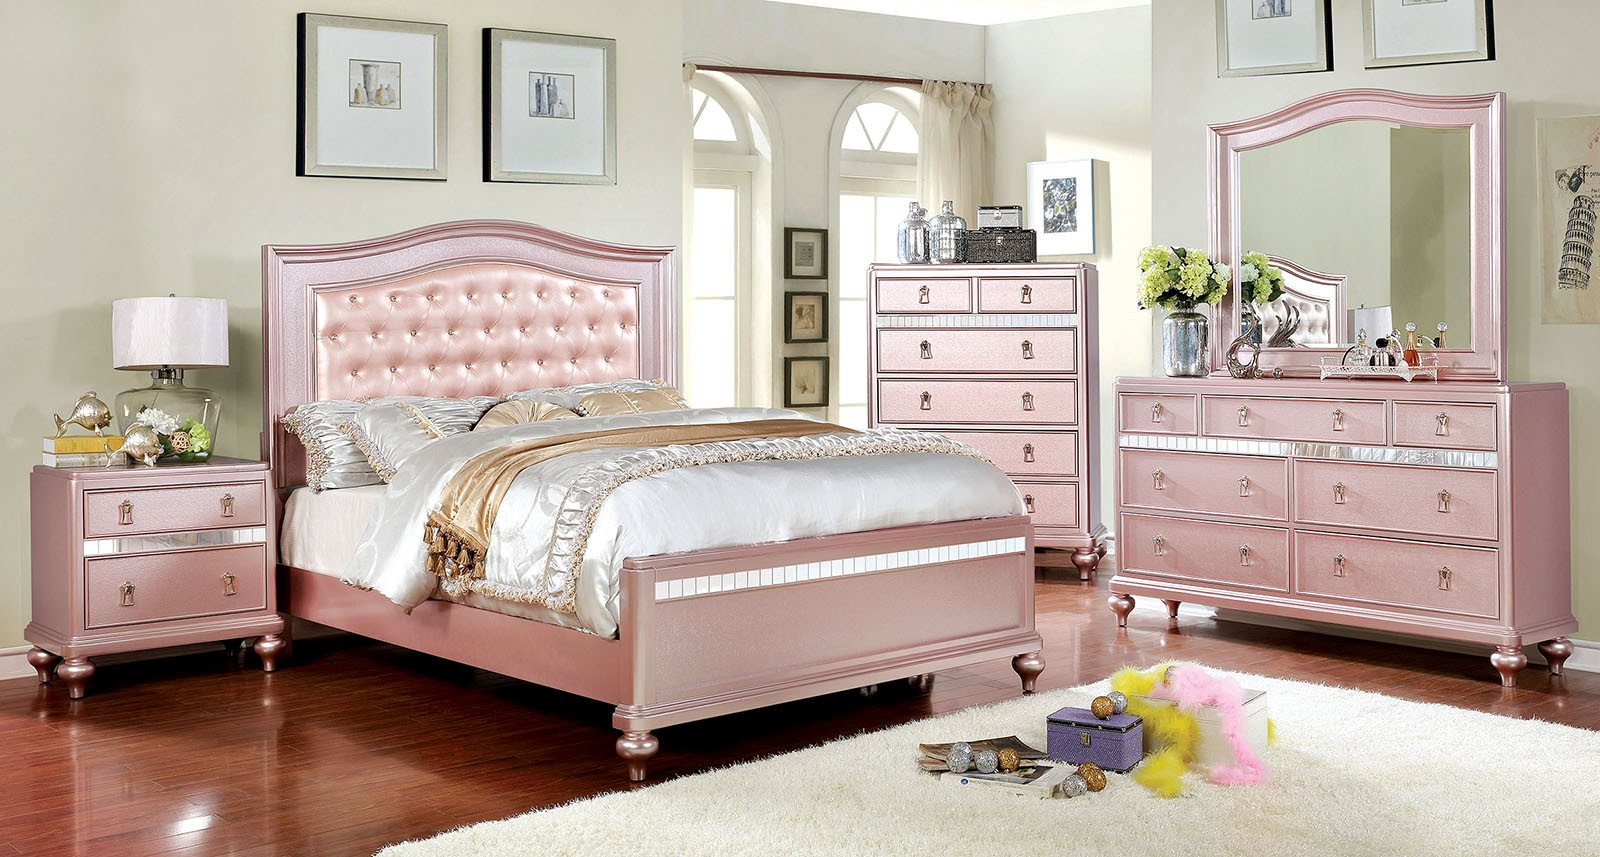 King Size Bedroom Set Cheap Fresh Ariston Rose Gold Finish Cal King Size Bed with Mirrored Trim Jeweled button Tufted Padded Leather Headboard